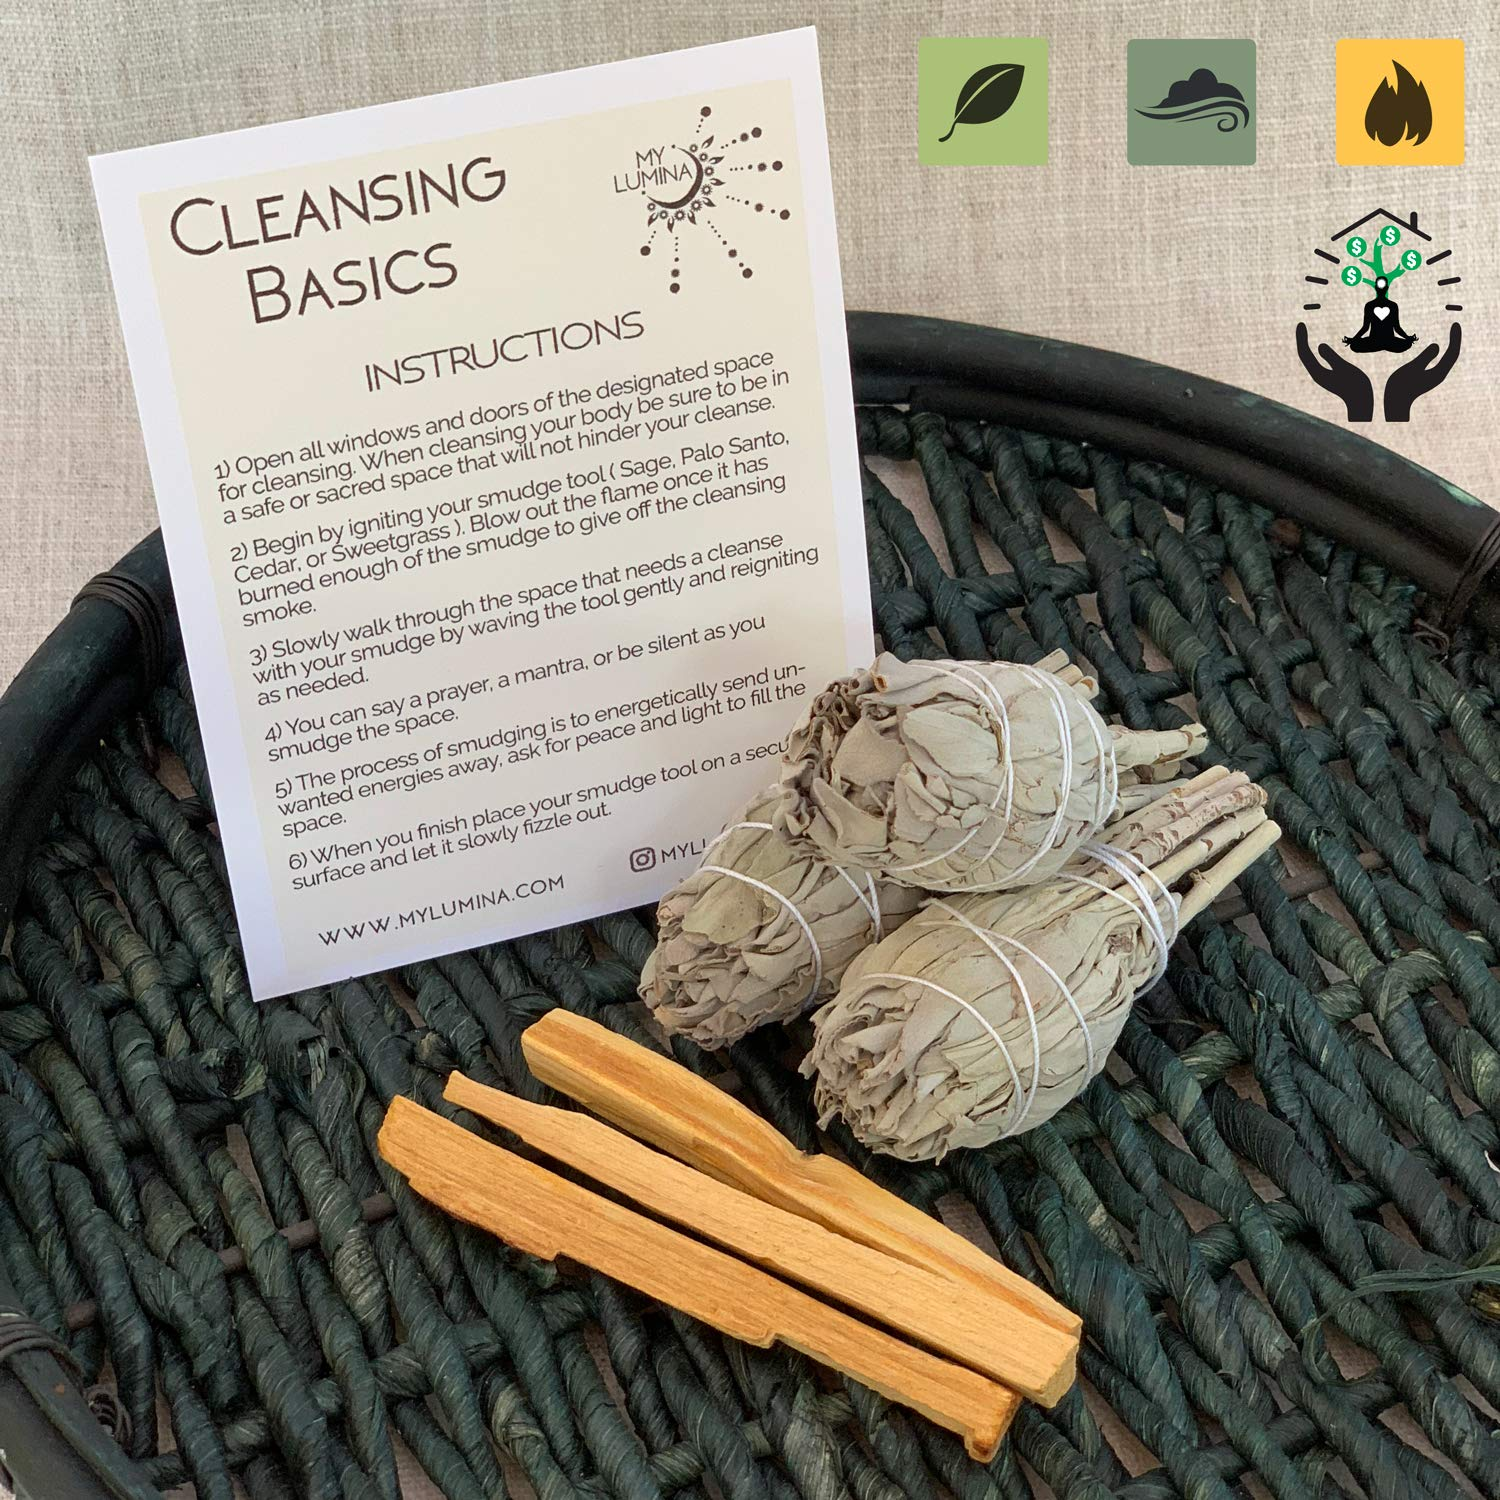 SMUDGE REFILL KIT STICKS - Chakra Balancing, White Sage & Palo Santo, for Healing Incense, Purifying, Protection, Spiritual Cleansing, Good Luck, Prosperity, Home Blessing and Meditation Stress Relief by My Lumina (Image #1)